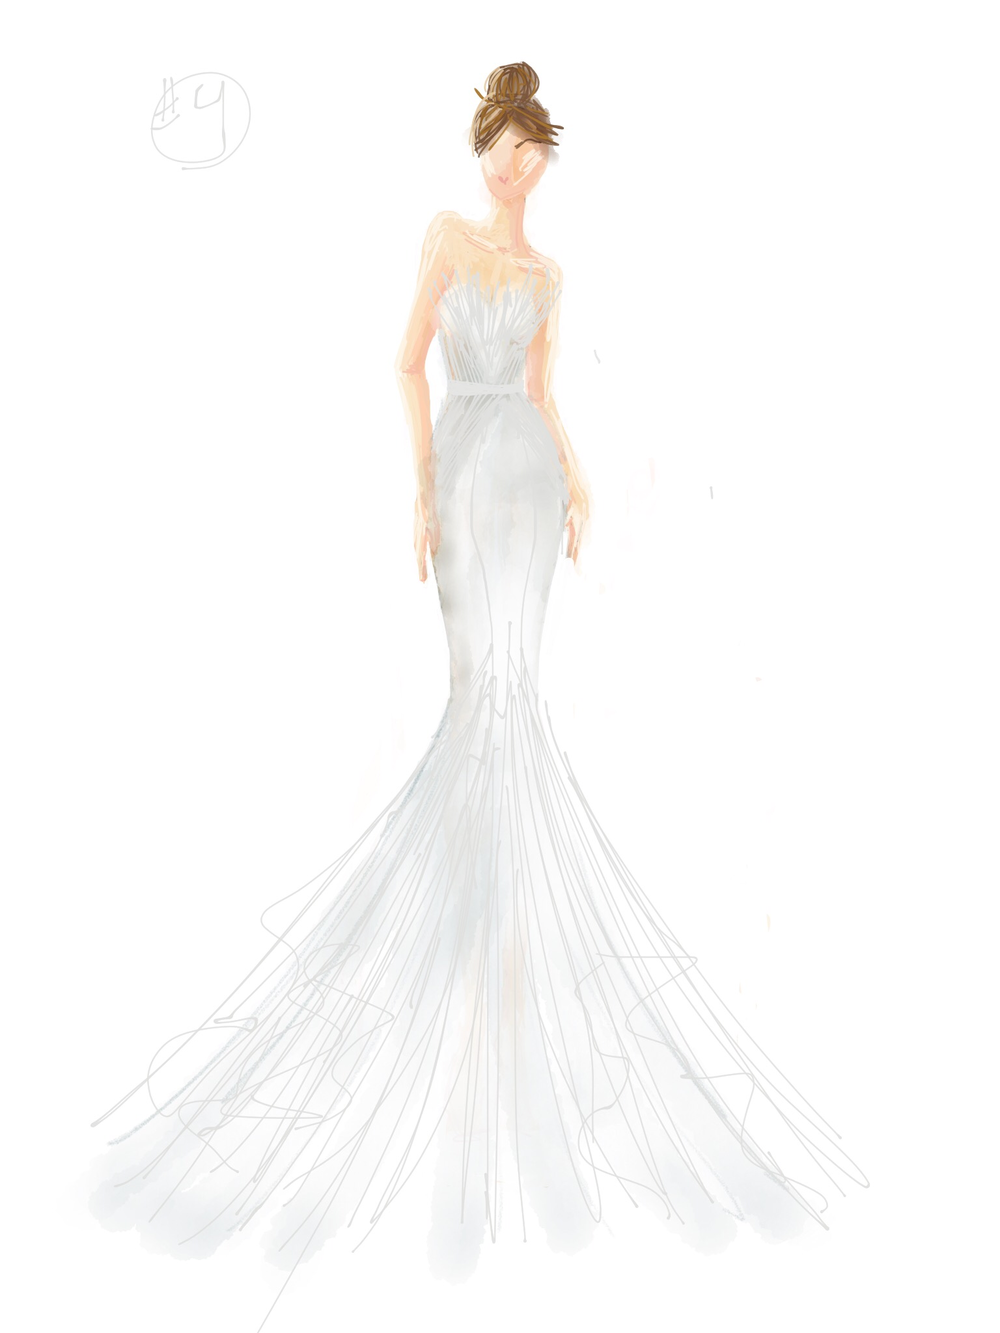 Custom wedding gown sketch new york designer, 4 21 41 PM.png